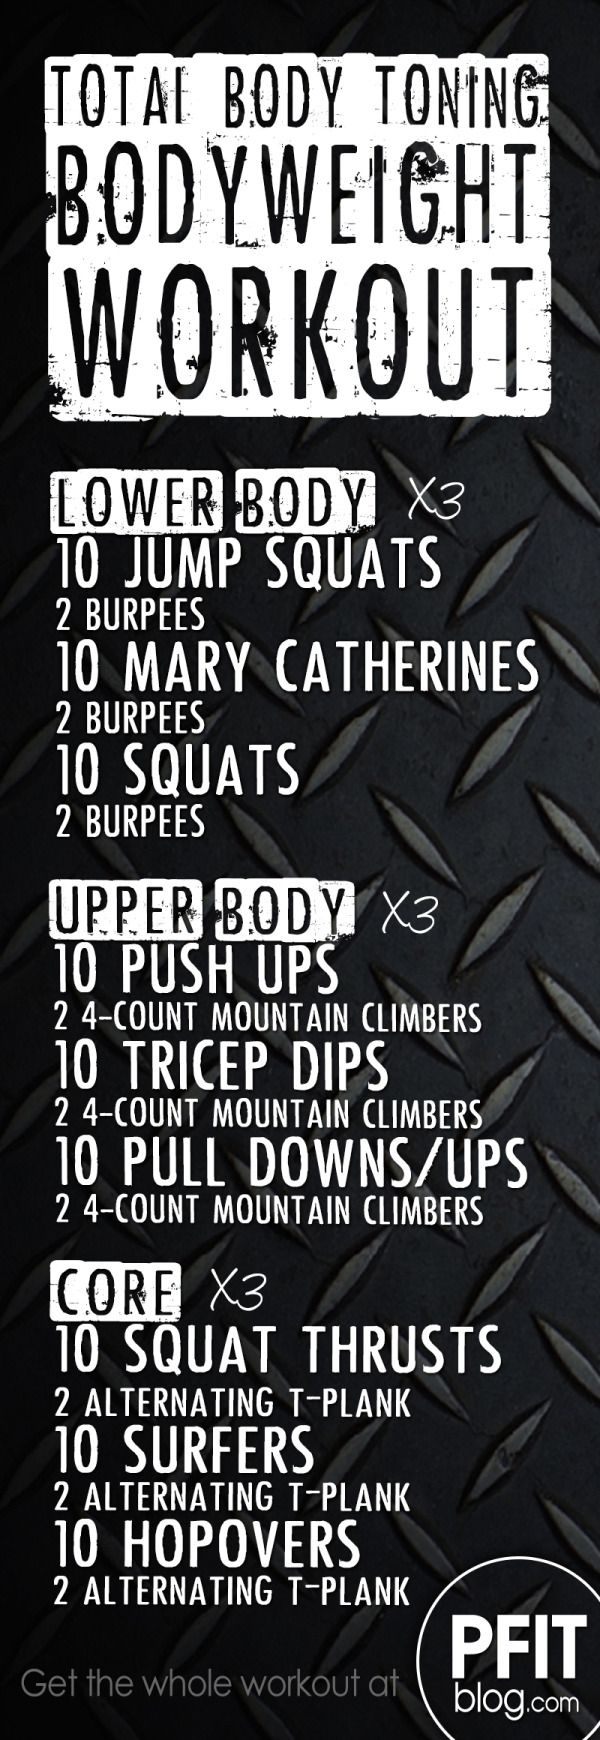 fitness roundup 12 strength and circuit workouts crazy